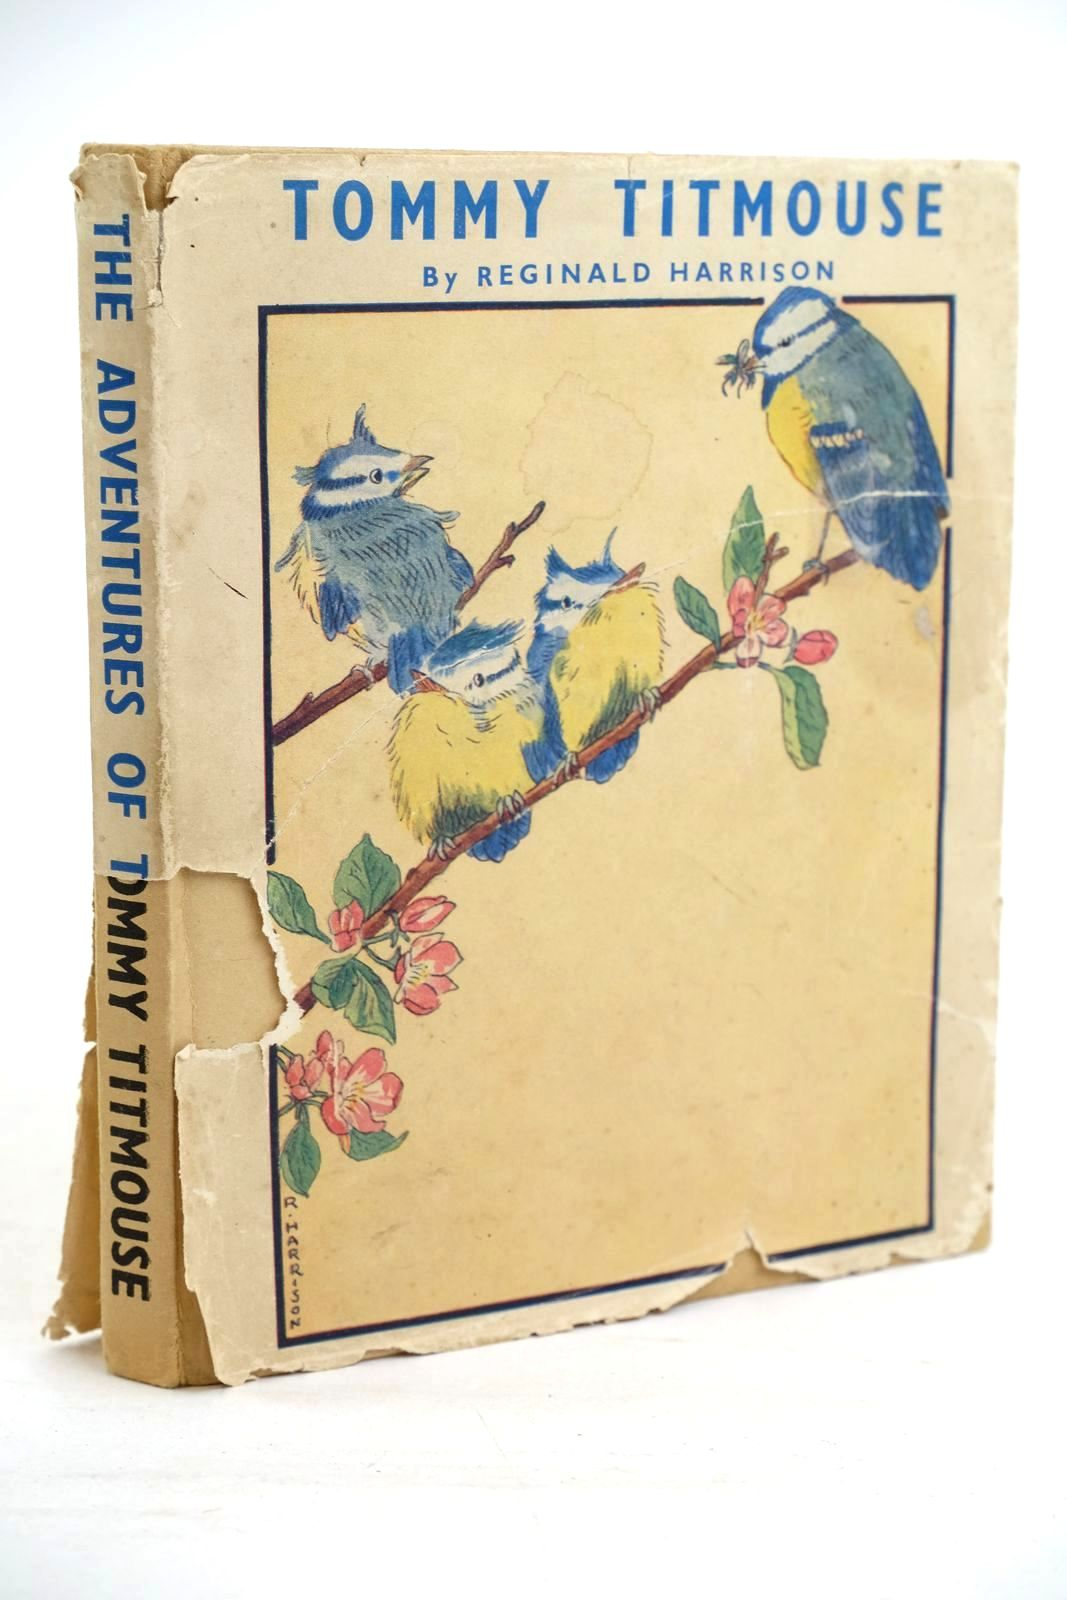 Photo of THE ADVENTURES OF TOMMY TITMOUSE written by Harrison, Reginald illustrated by Harrison, Reginald published by A. & C. Black Ltd. (STOCK CODE: 1320452)  for sale by Stella & Rose's Books